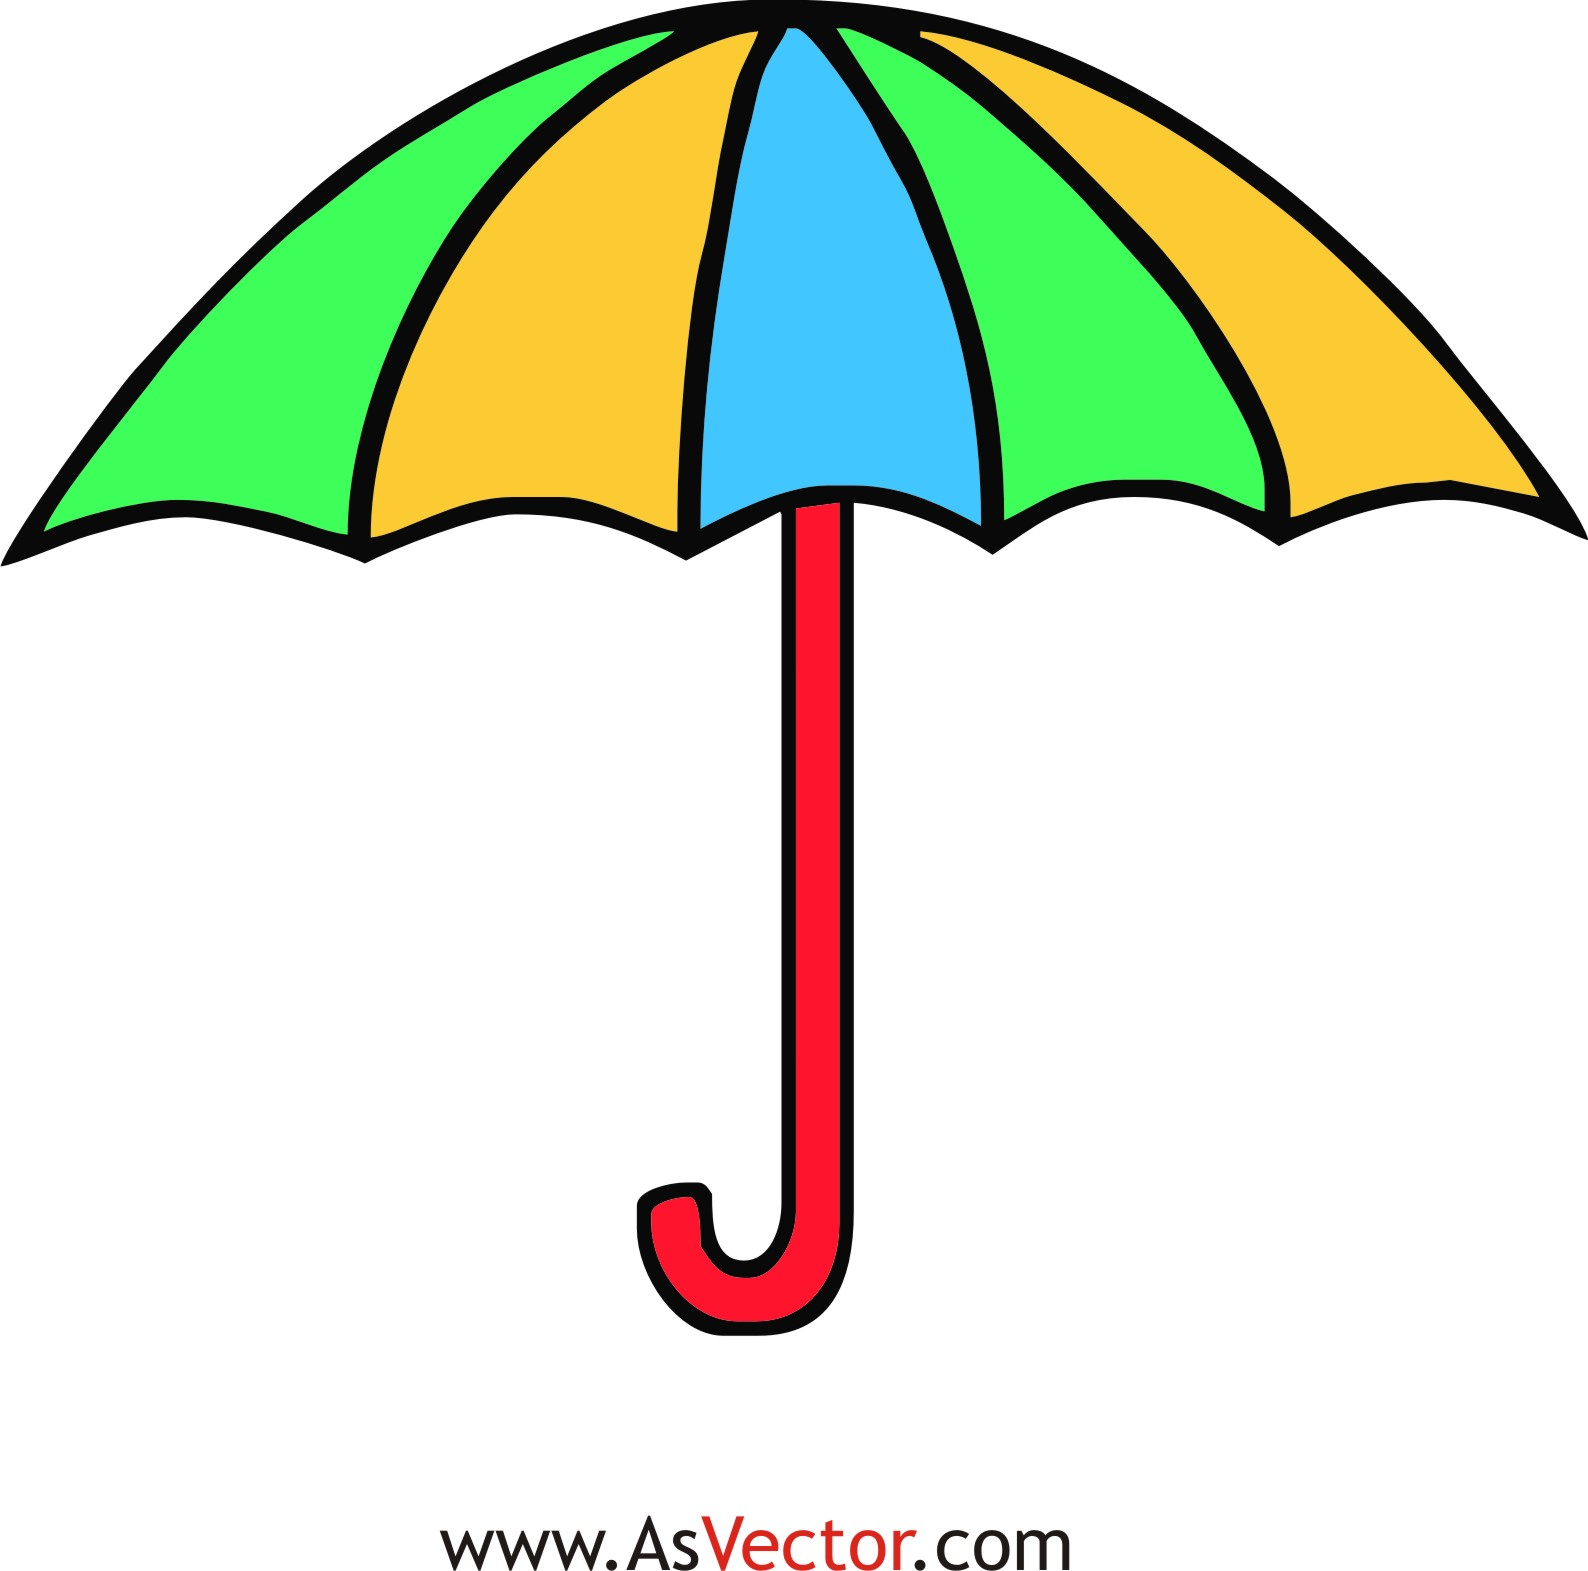 1588x1571 Free Umbrella Clipart Public Domain Umbrella Clip Art Images 2